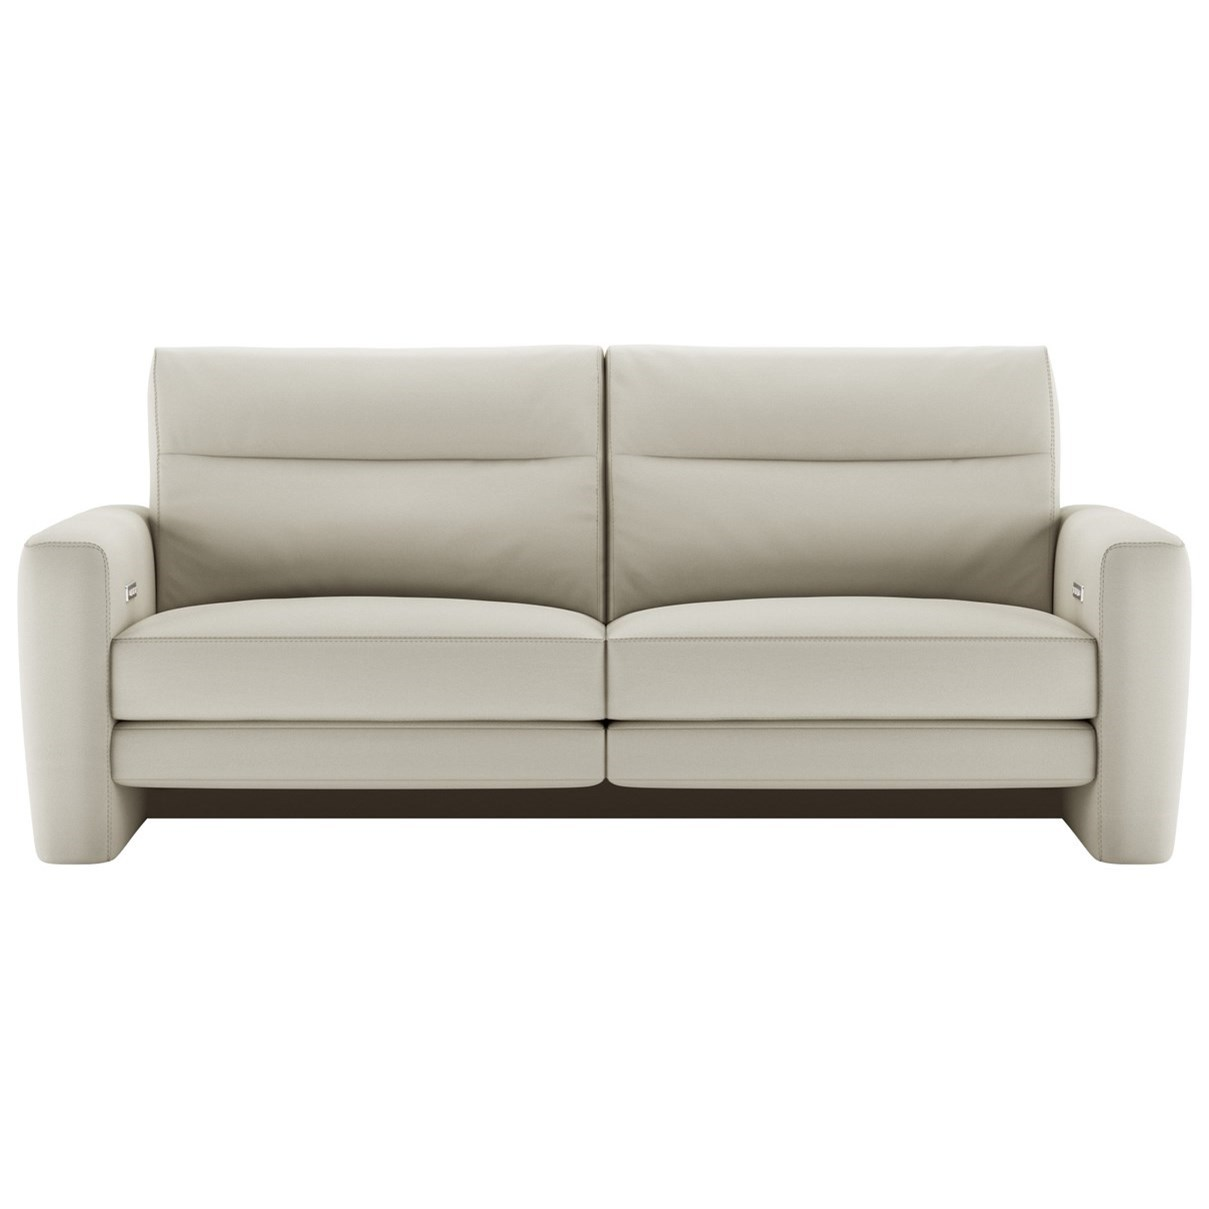 Chelsea - Style in Motion Power Reclining Sofa by American Leather at C. S. Wo & Sons Hawaii